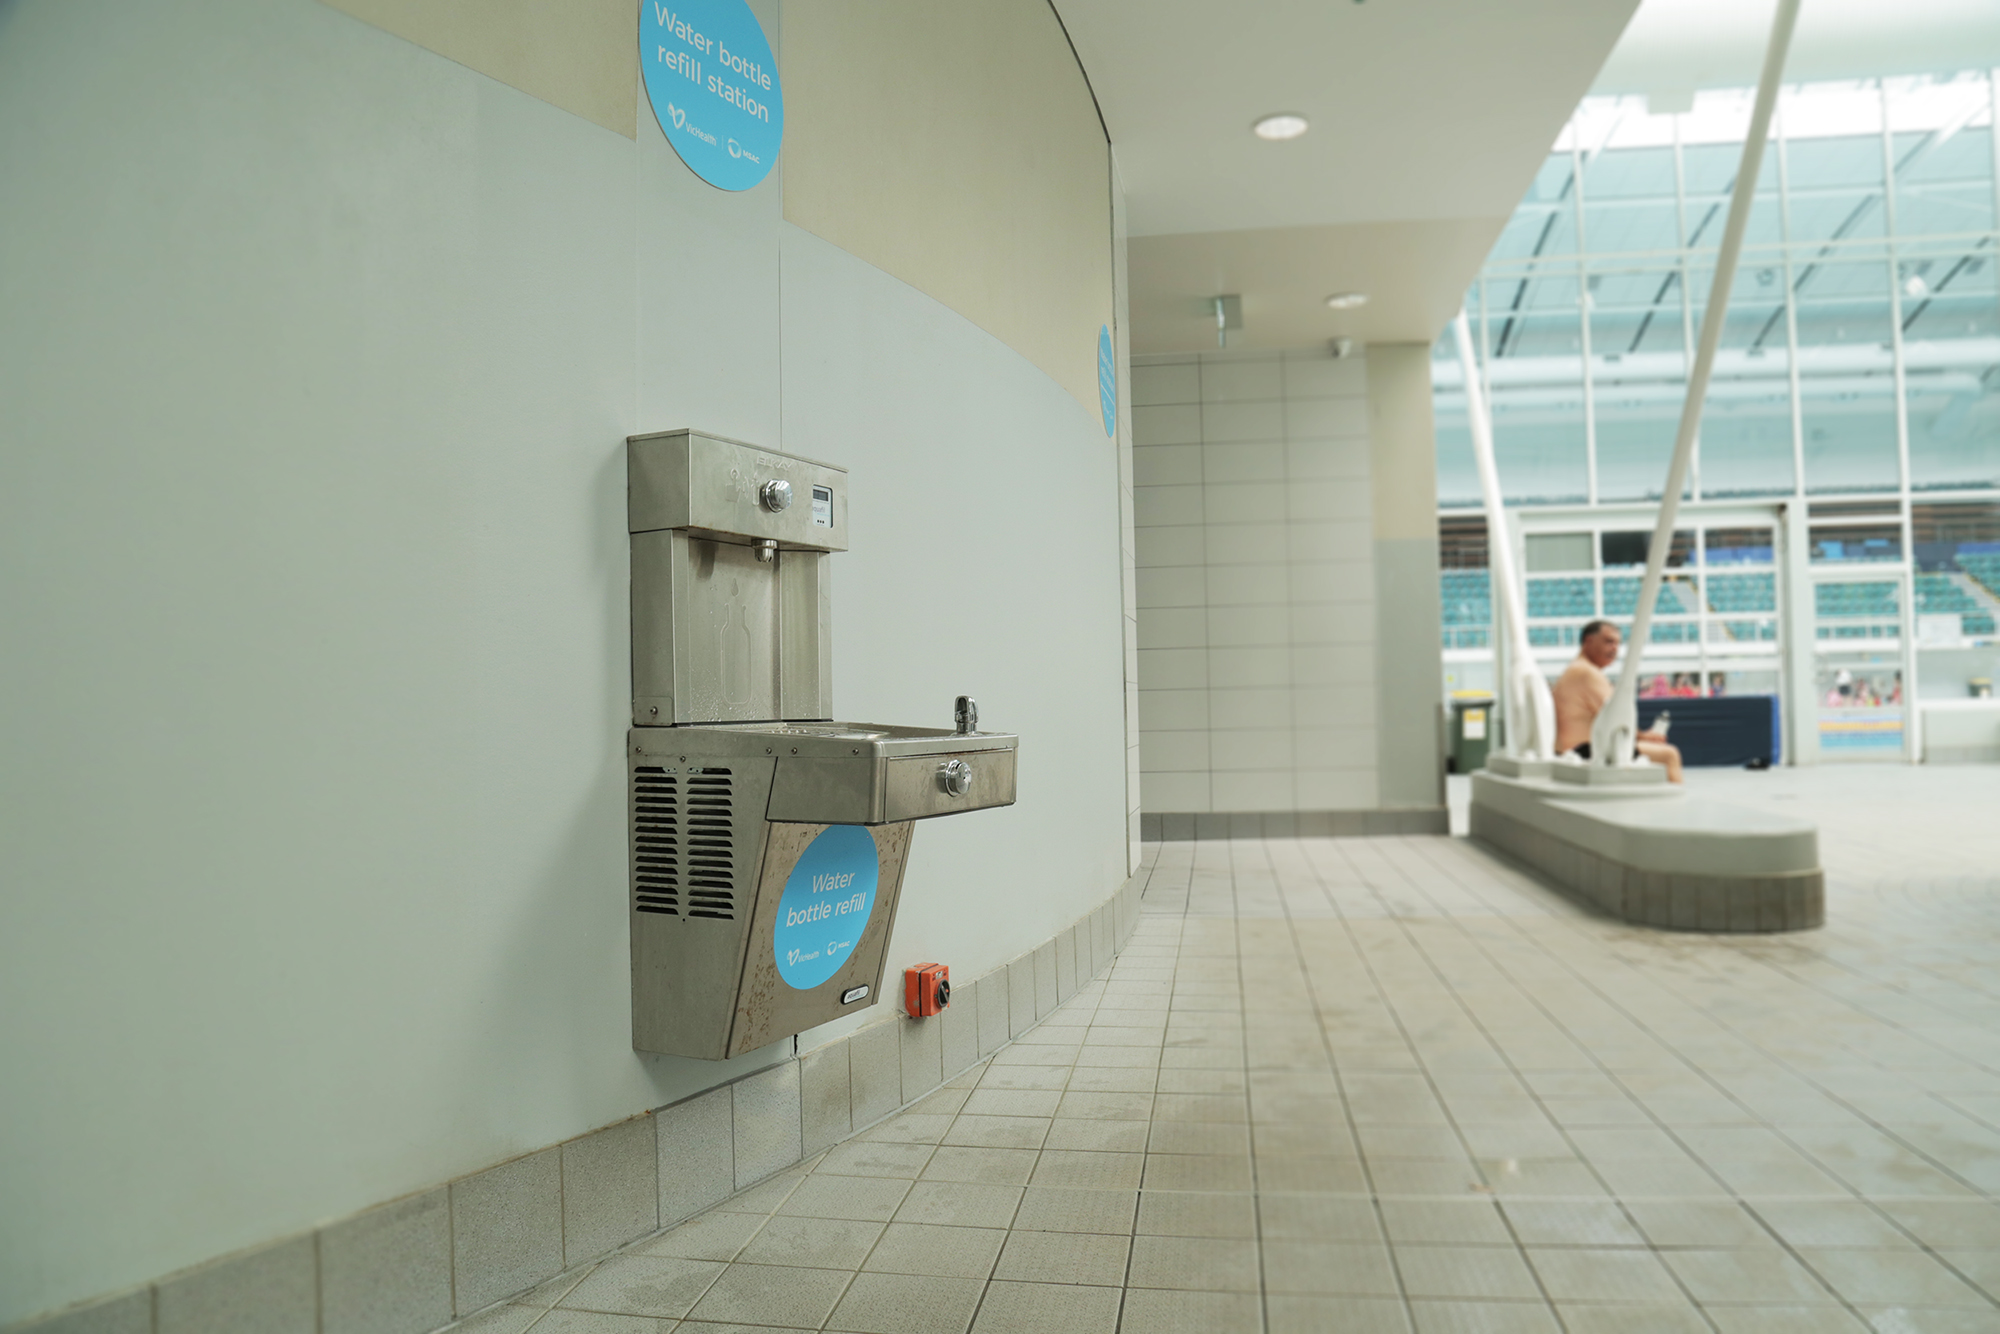 The Elkay EZH2O bottle refill station and drinking fountain installed at Melbourne Sports and Aquatic centre in the pool area